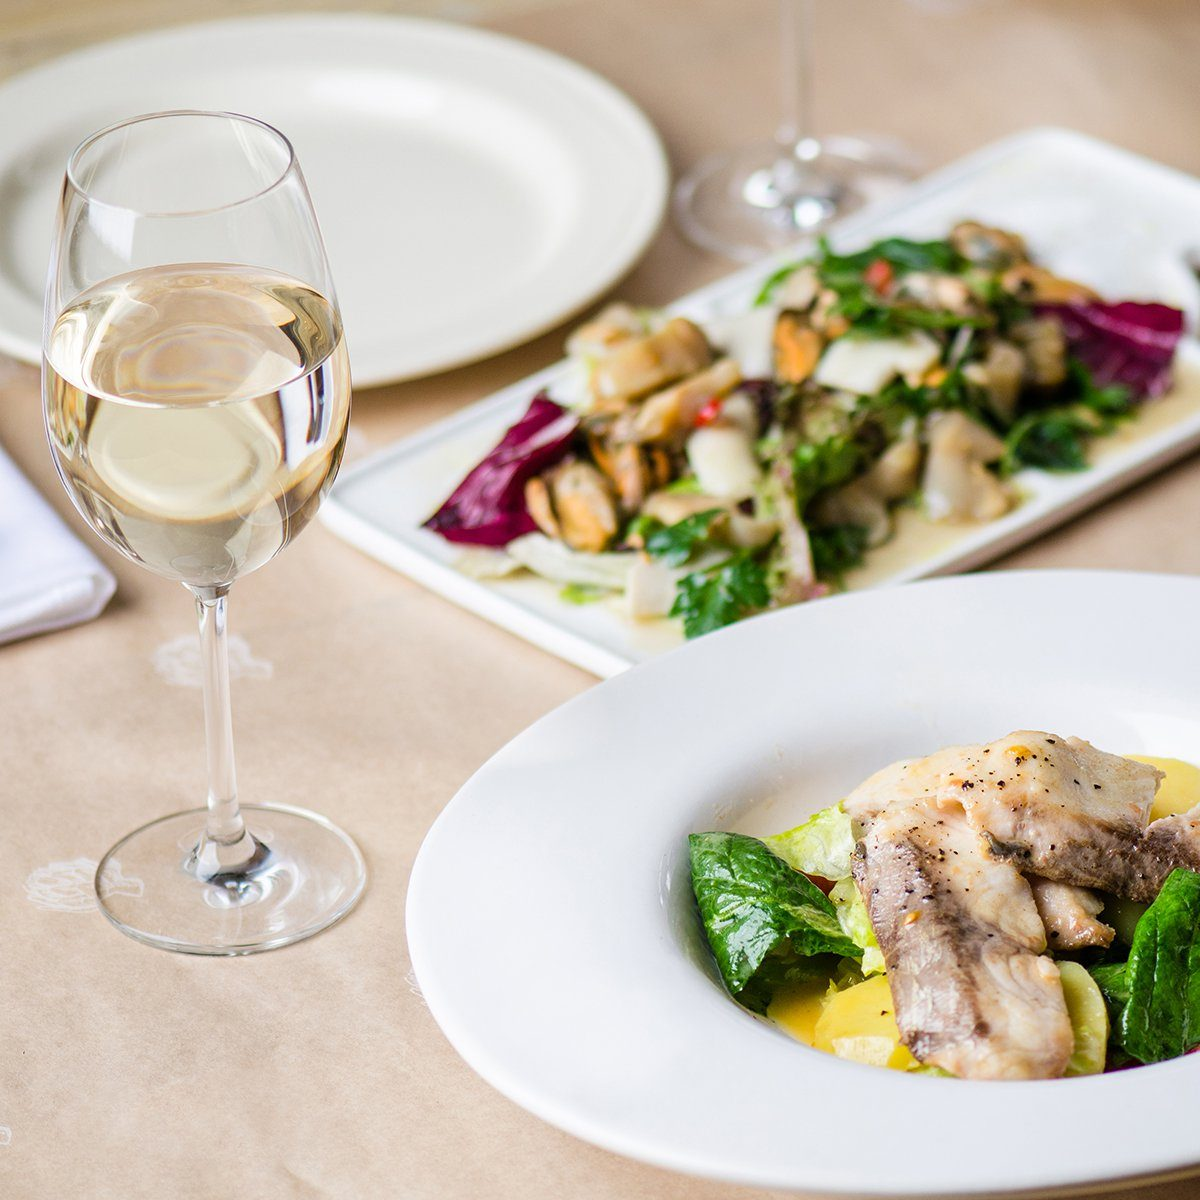 Fish fried with vegetables , seafood salad and white wine - a lovely dinner for two . Living healthy food . Close-up in white plate on the served table.